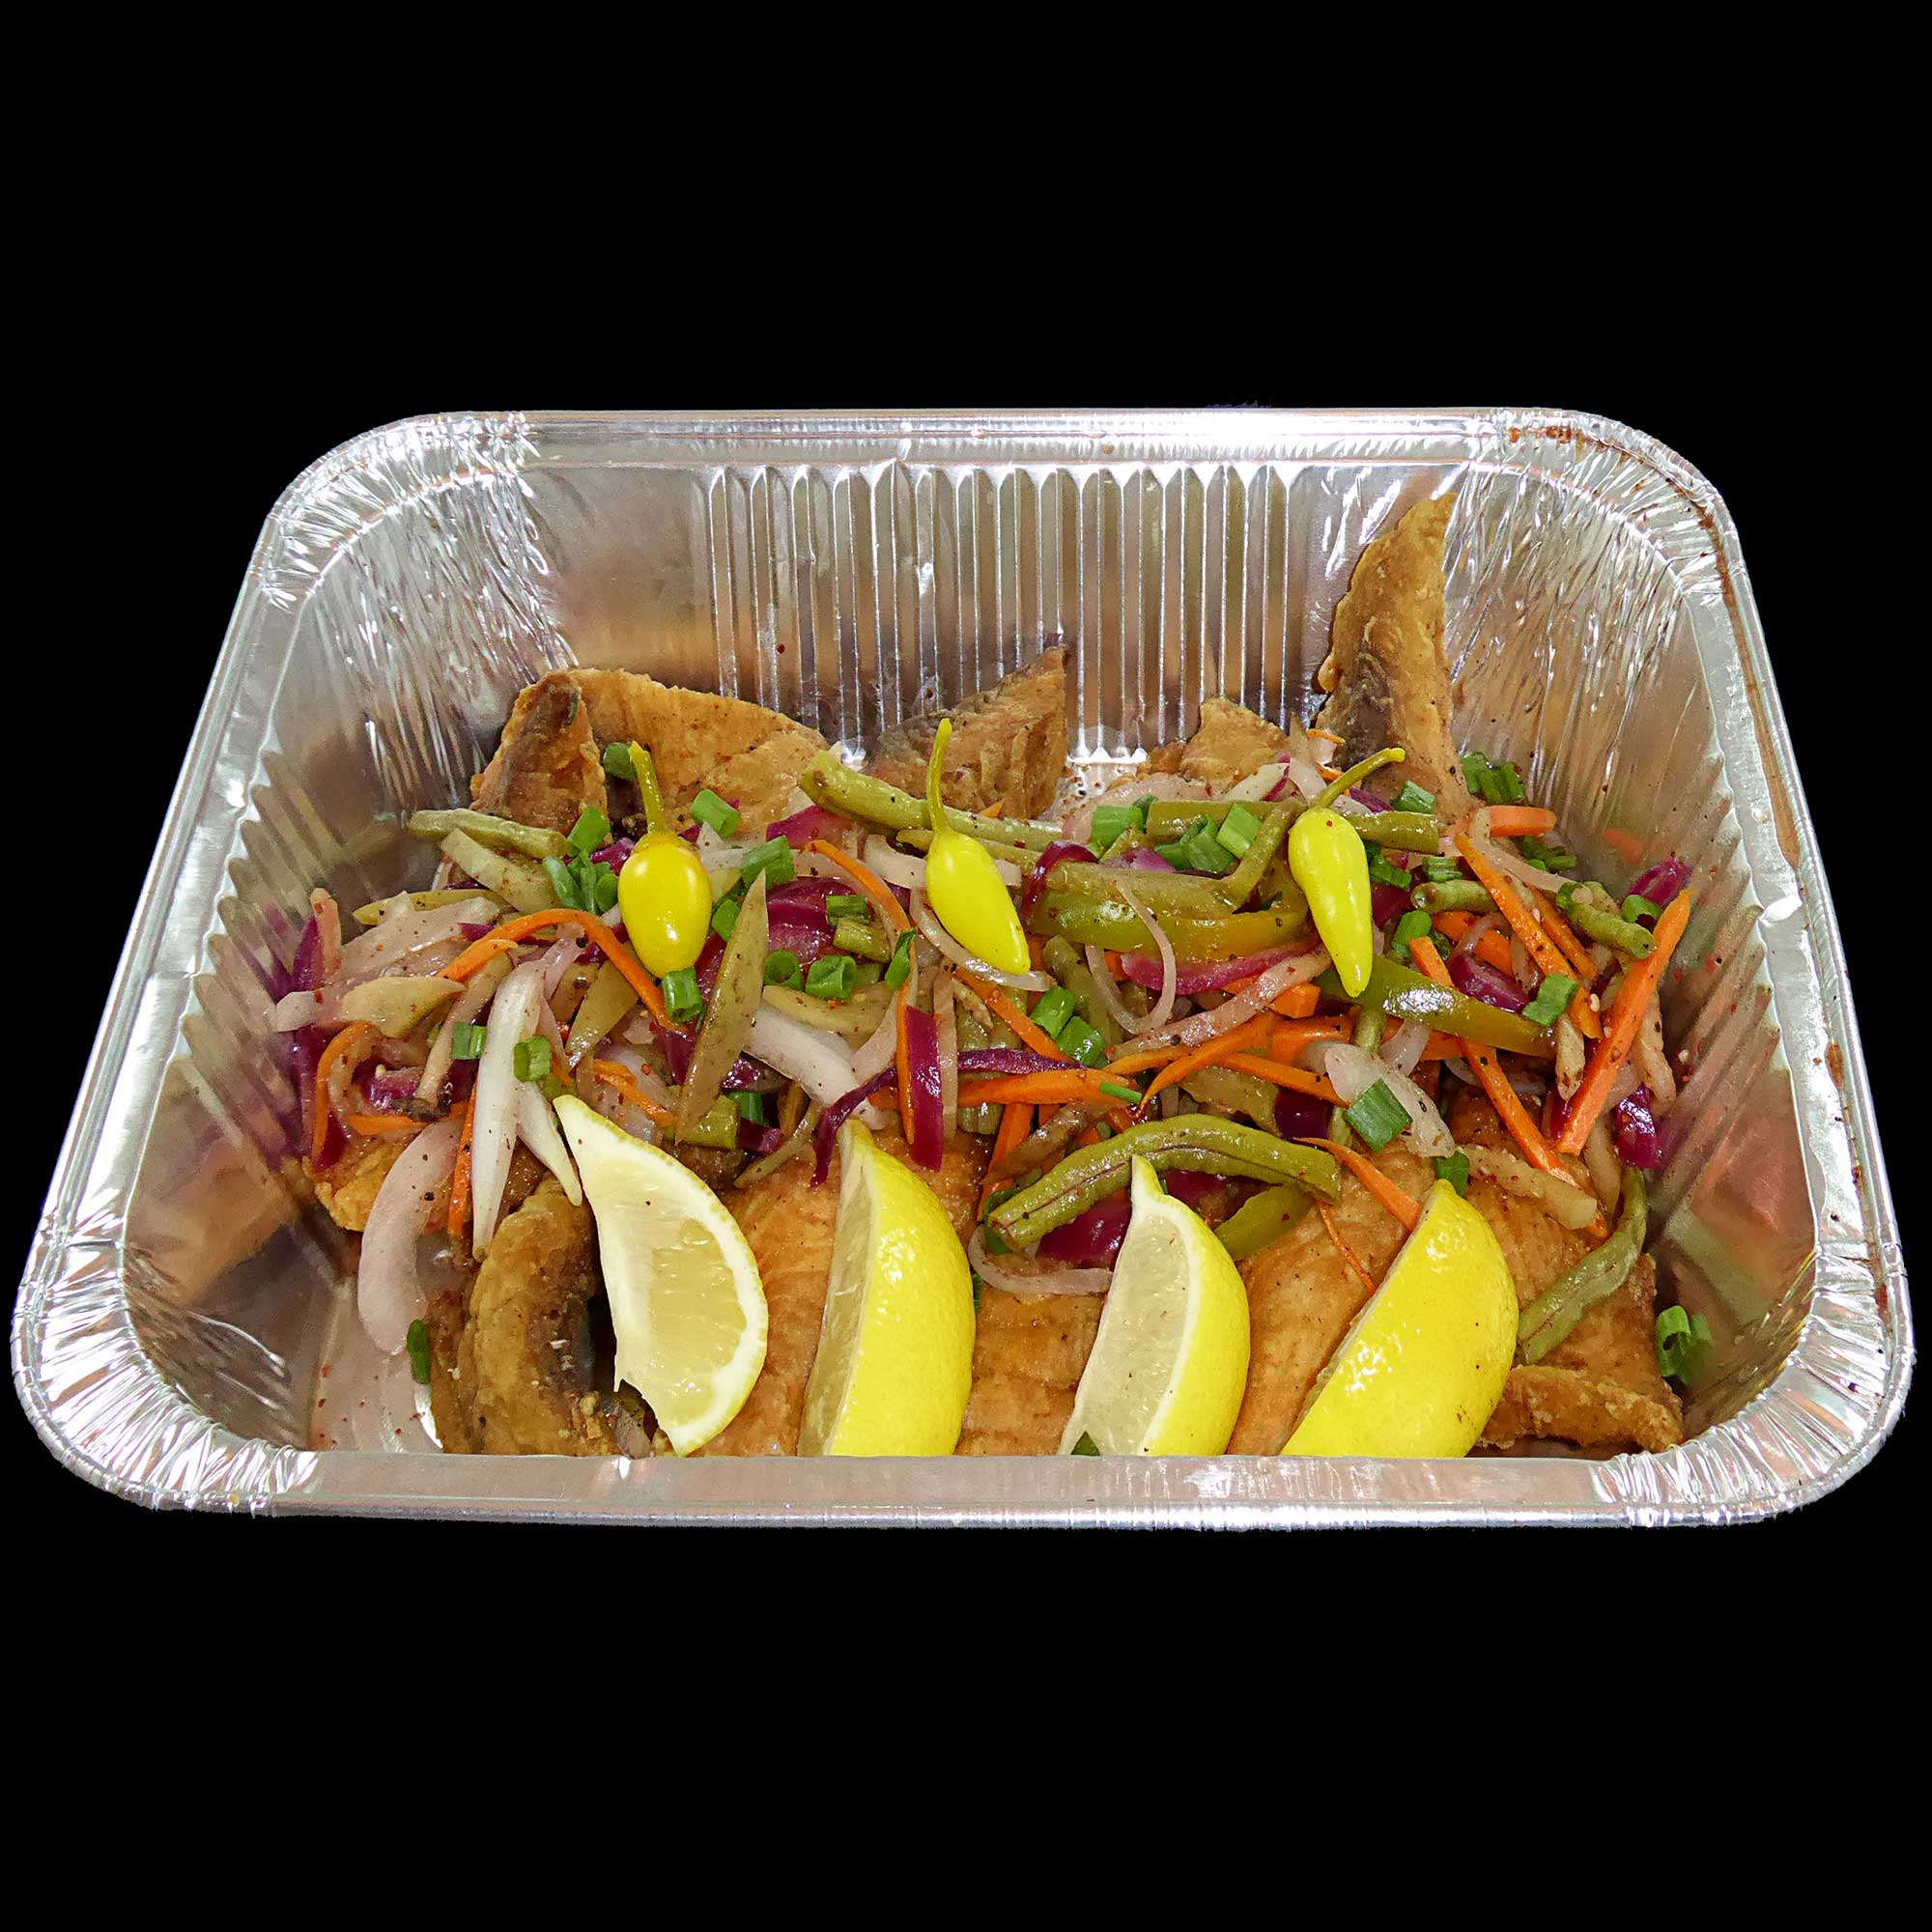 "Serious Fish Fry&nbsp;&nbsp;<strong style=""font-size: 20px;""><span style=""color: rgb(255, 0, 0);""><span style=""font-family: Calibri, sans-serif;"">New!</span></span></strong>"